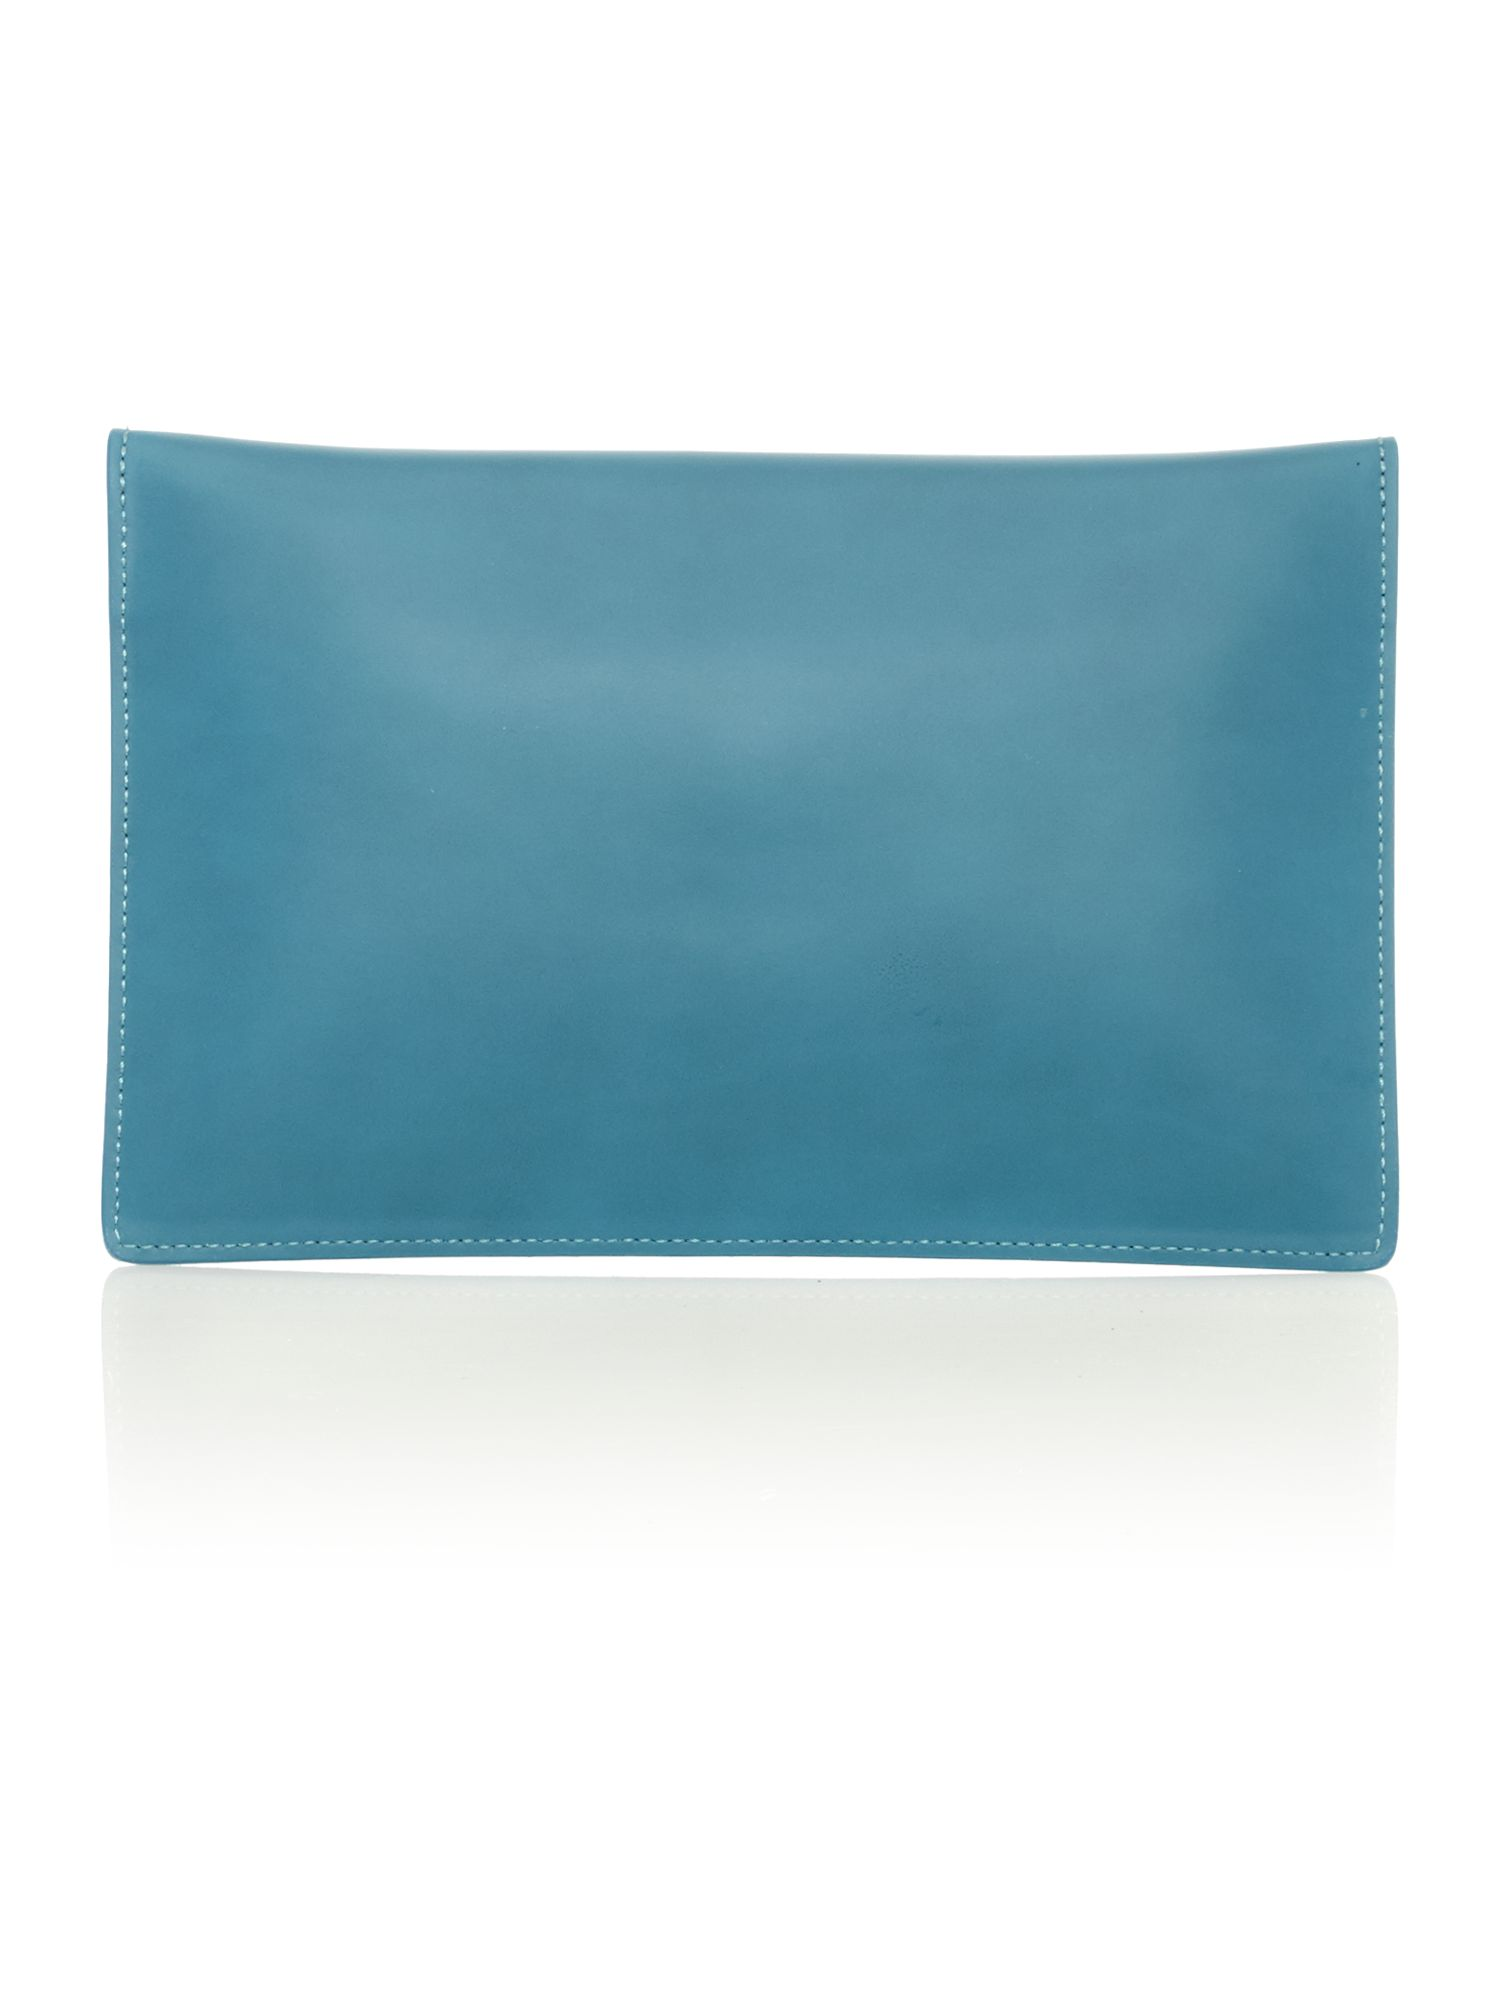 Private blue clutch